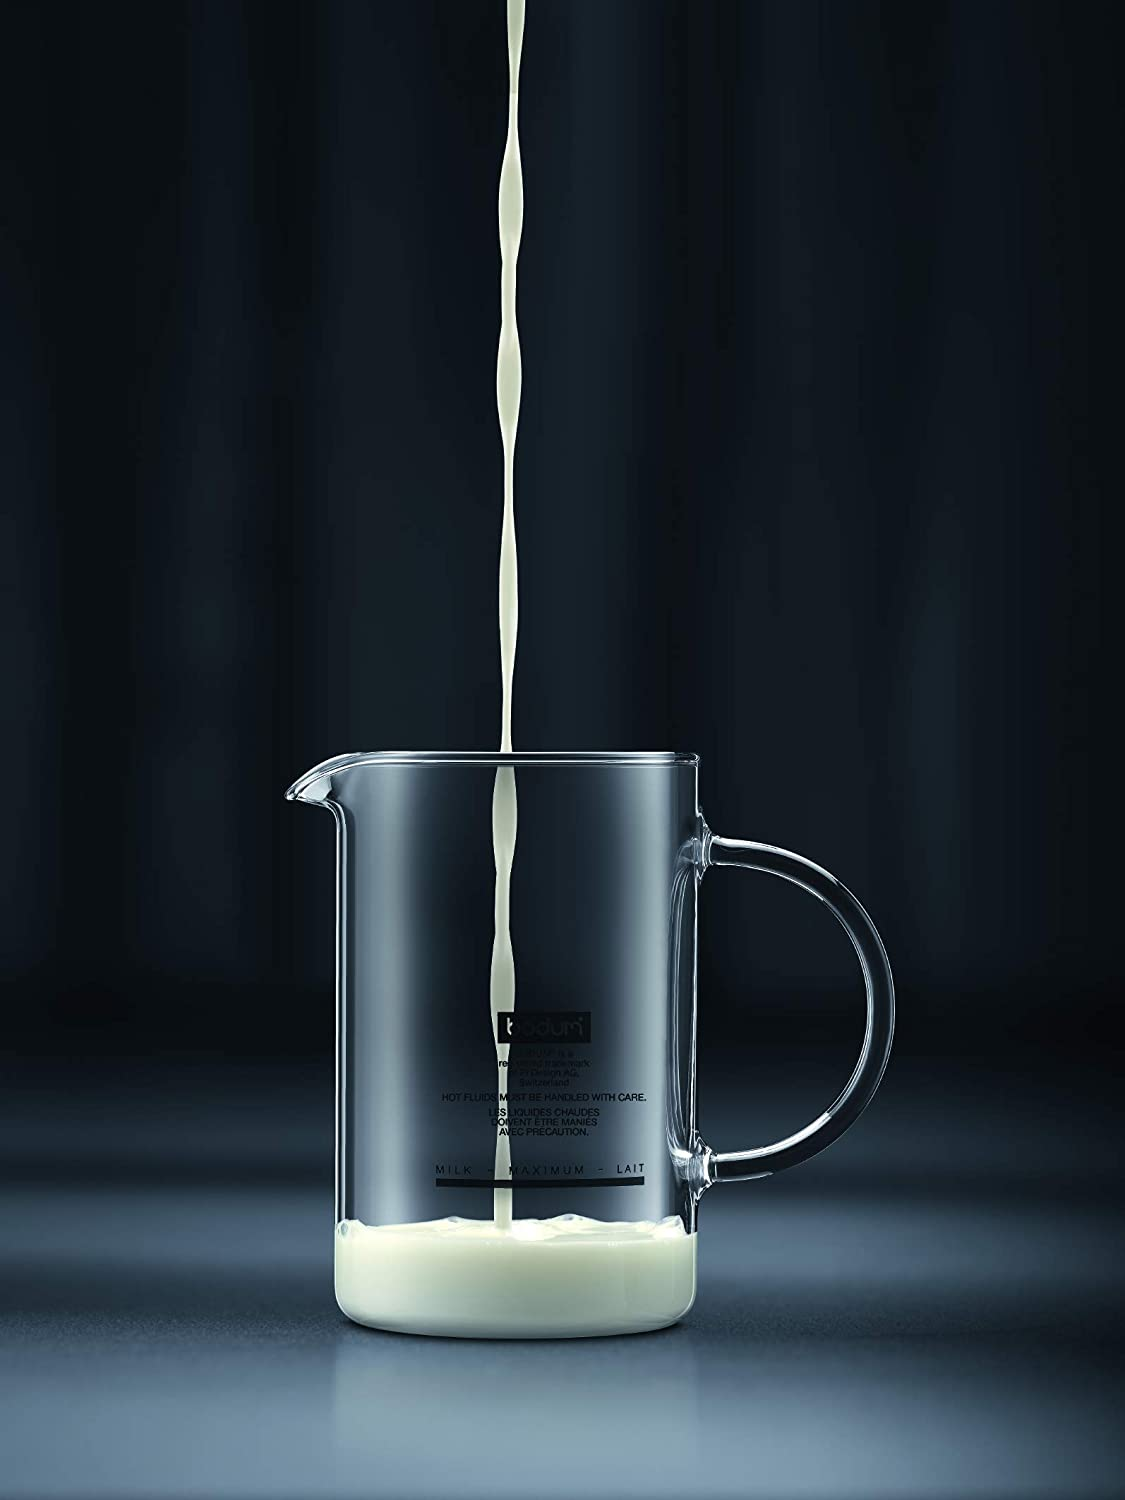 Bodum 11870-01US Bistro Electric Milk Frother 10 Ounce Black